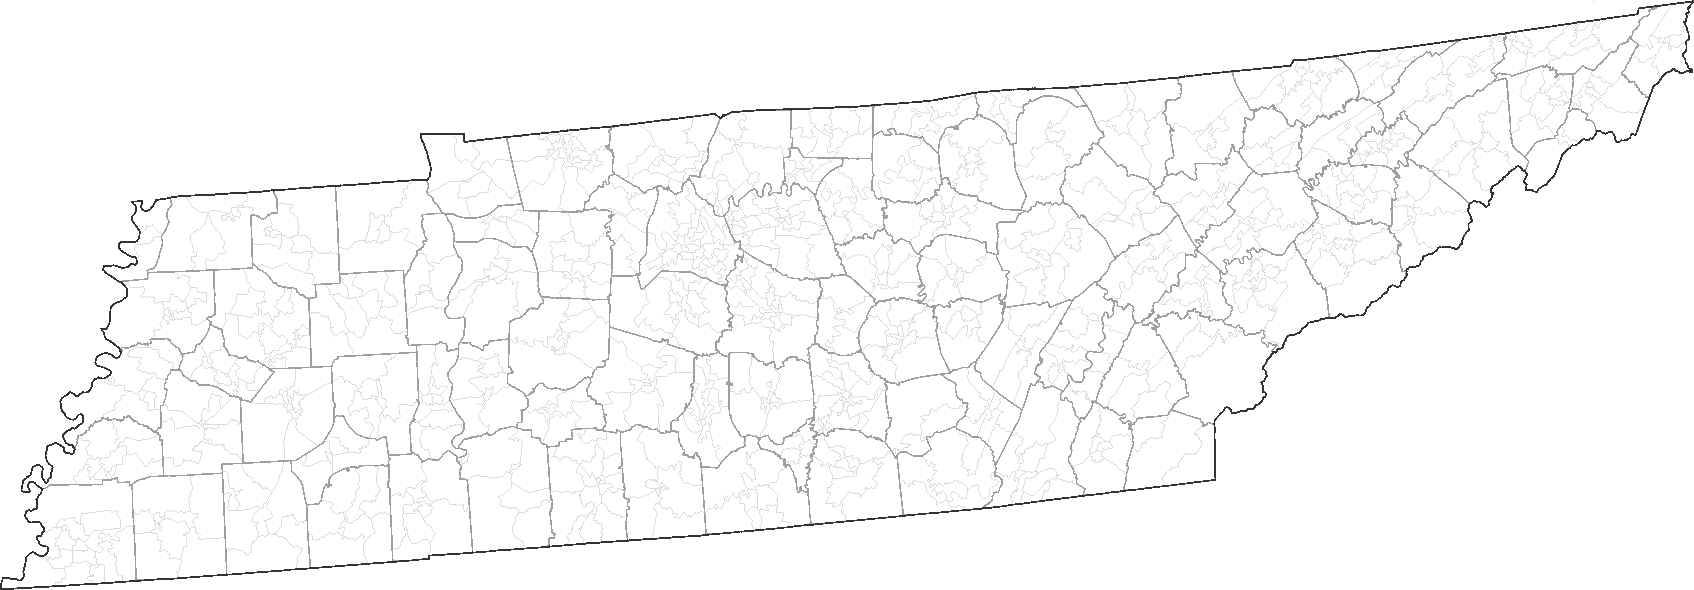 US County Subdivision - Tennessee.png